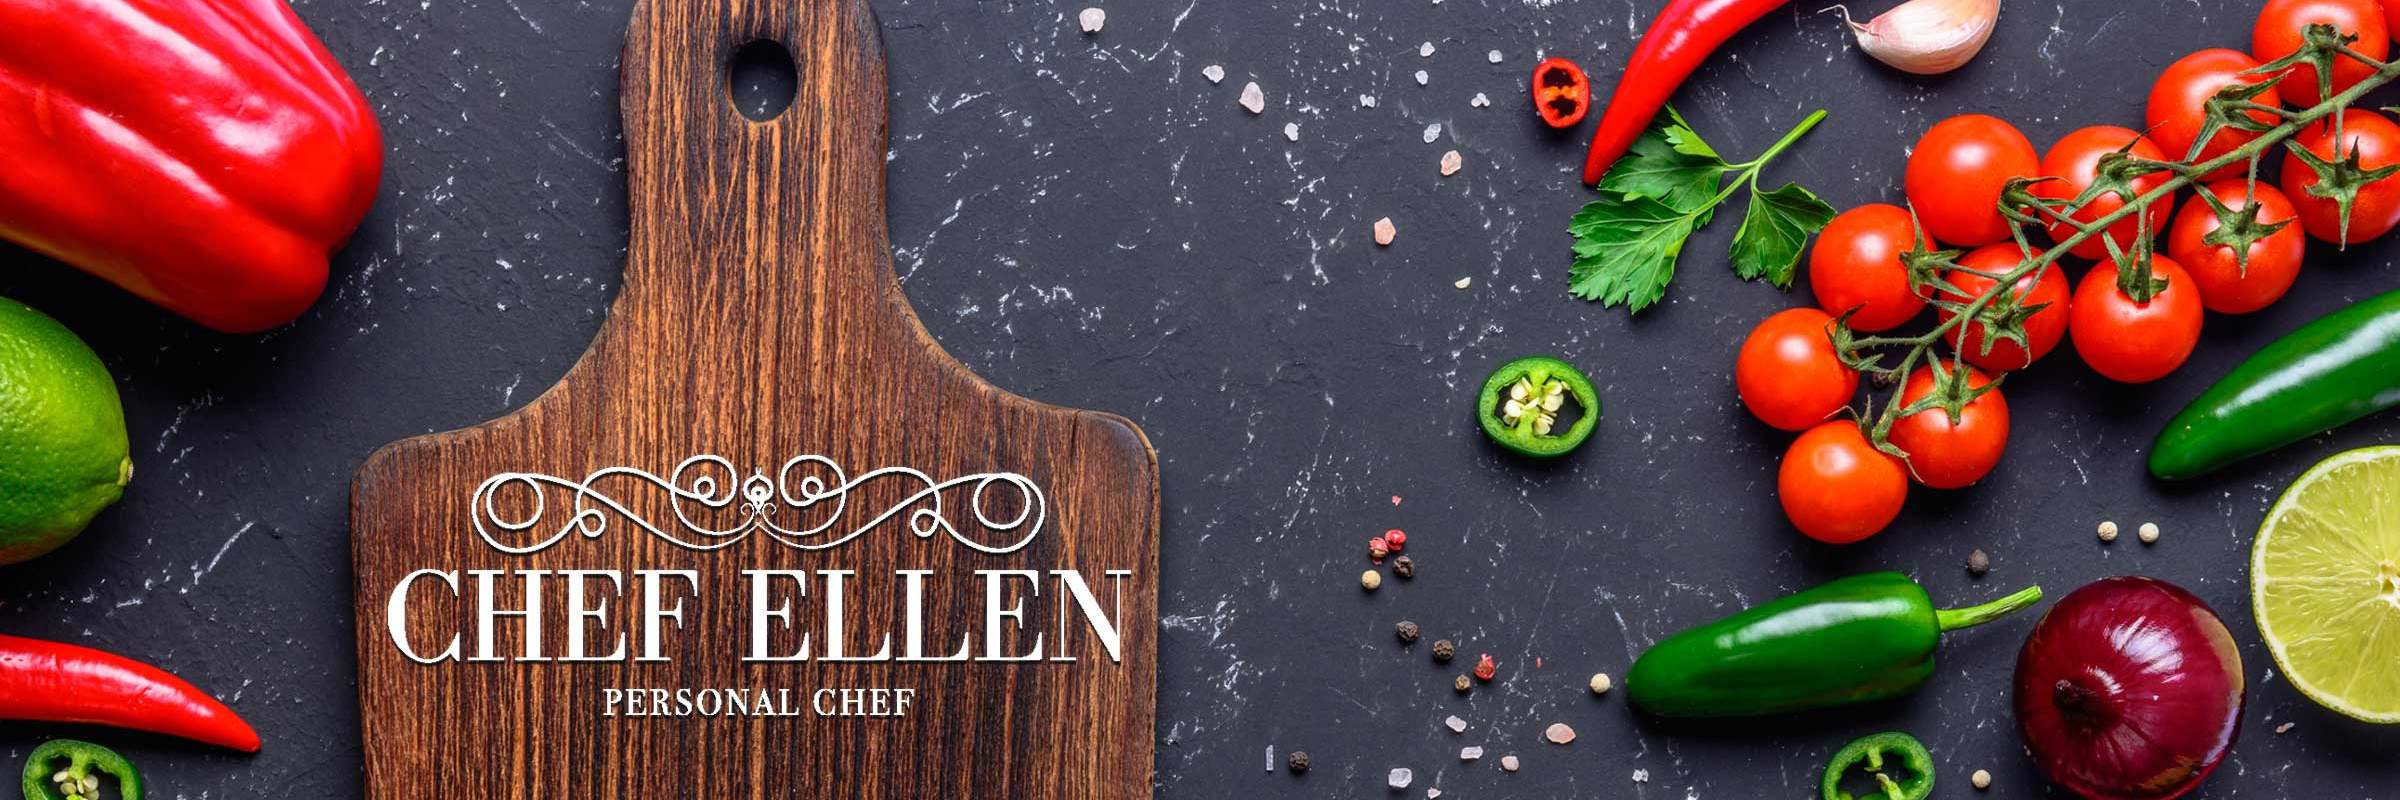 Chef Ellen Hero Image - Cutting Board with Vegetables